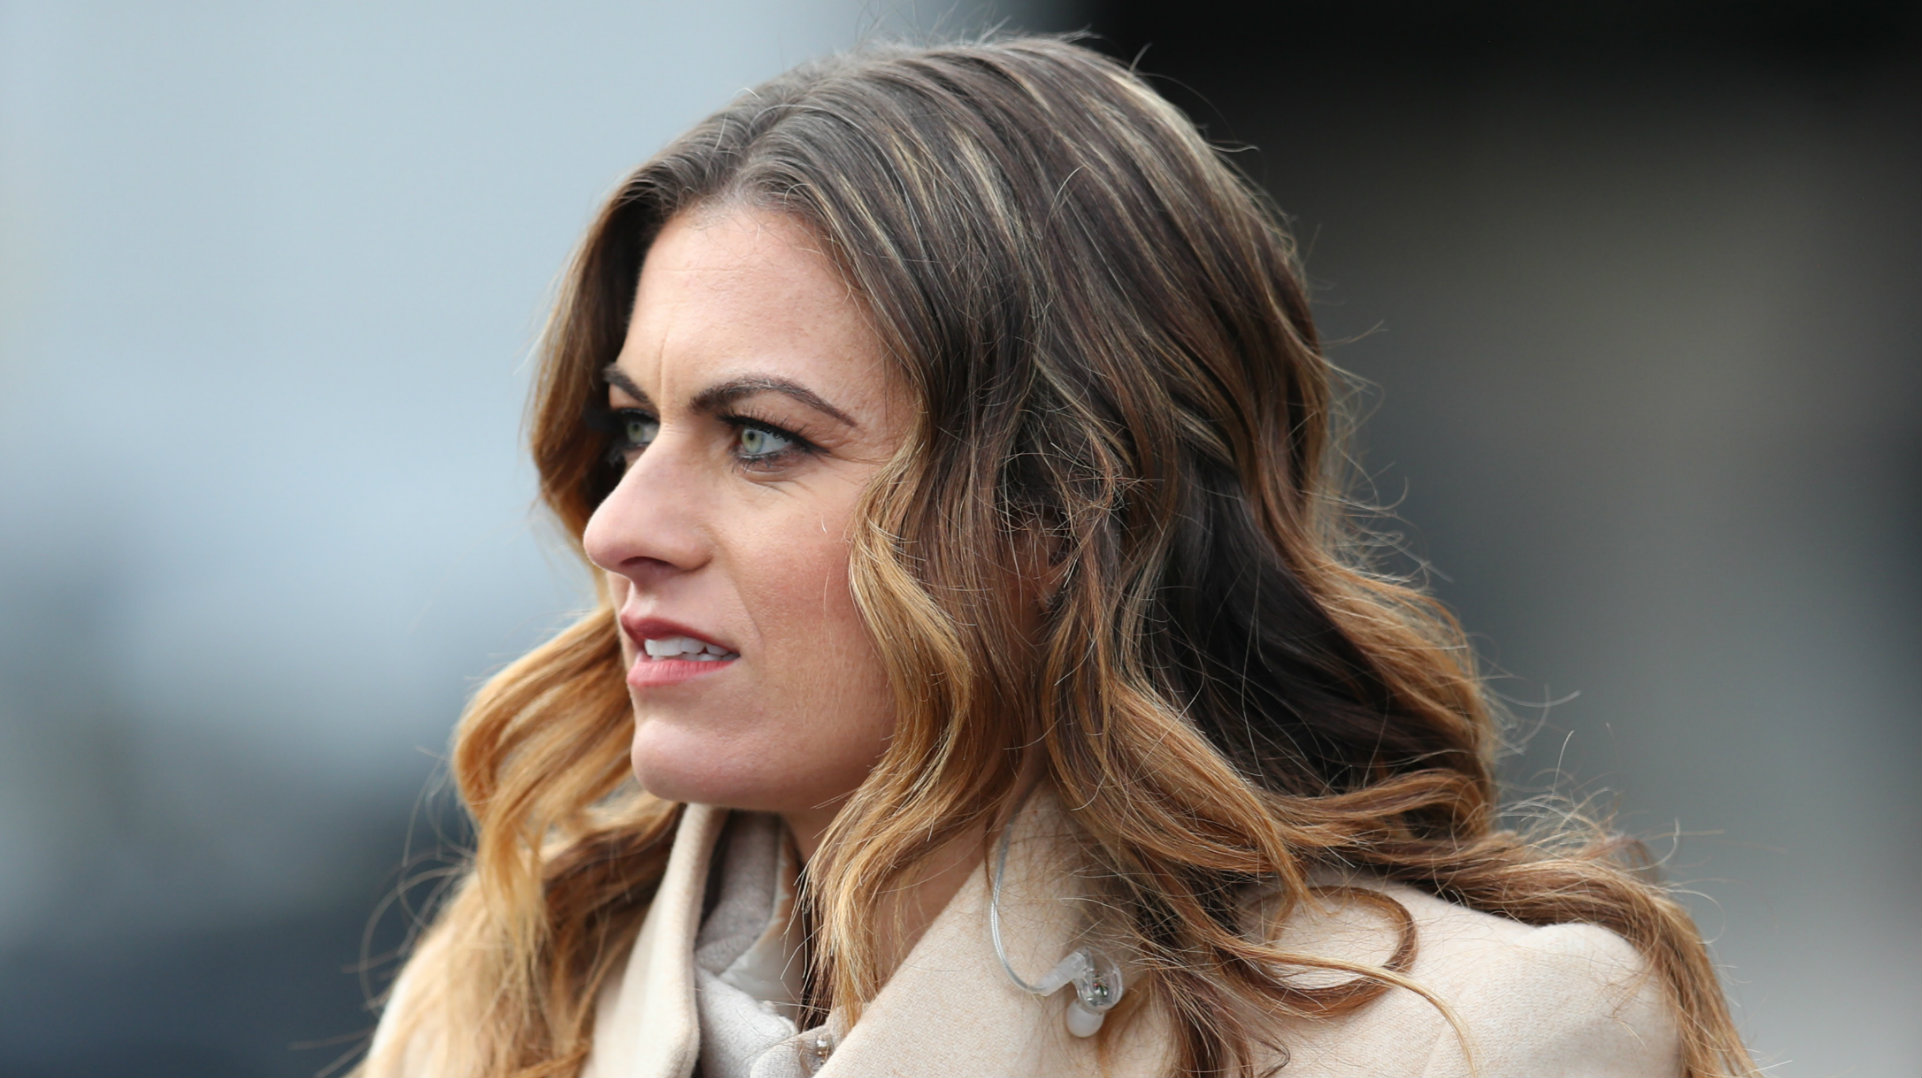 Karen Carney deletes Twitter account after abuse over Leeds comments